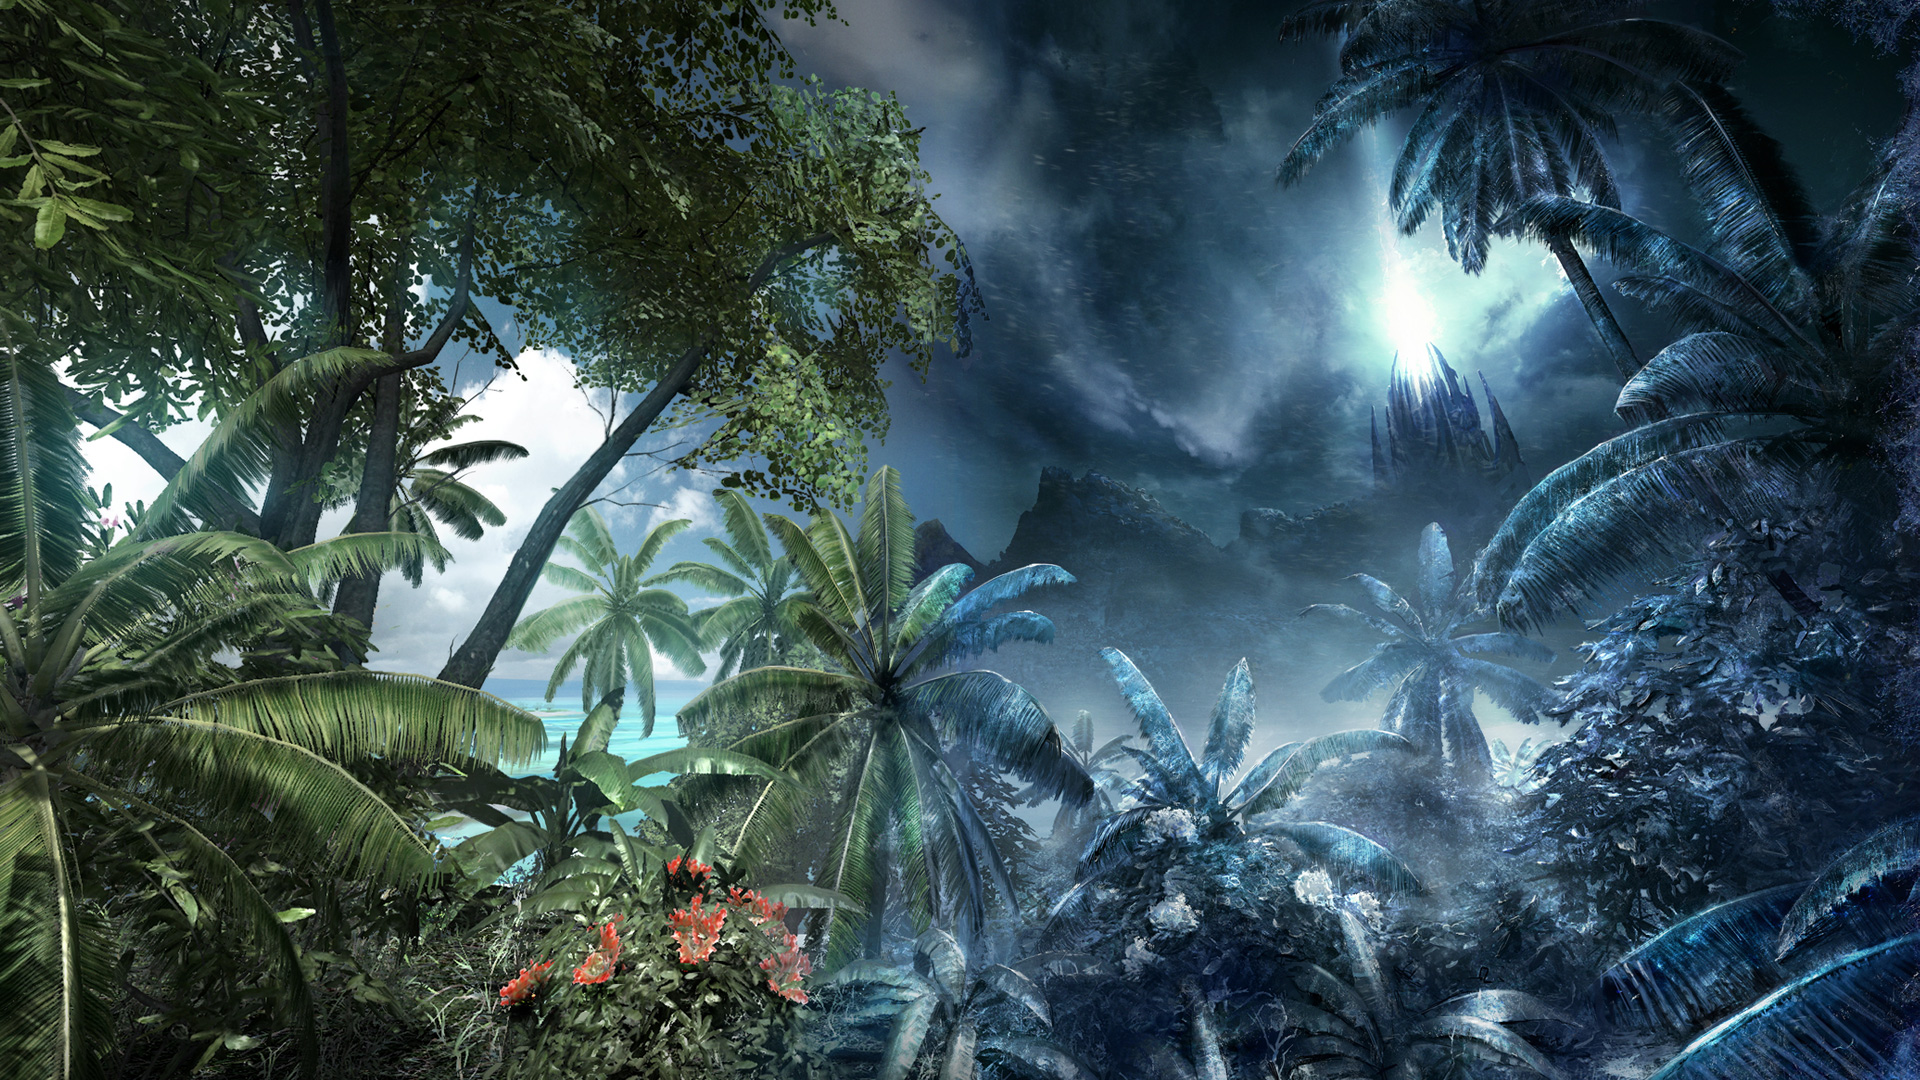 Crysis Wallpaper in 1920x1080